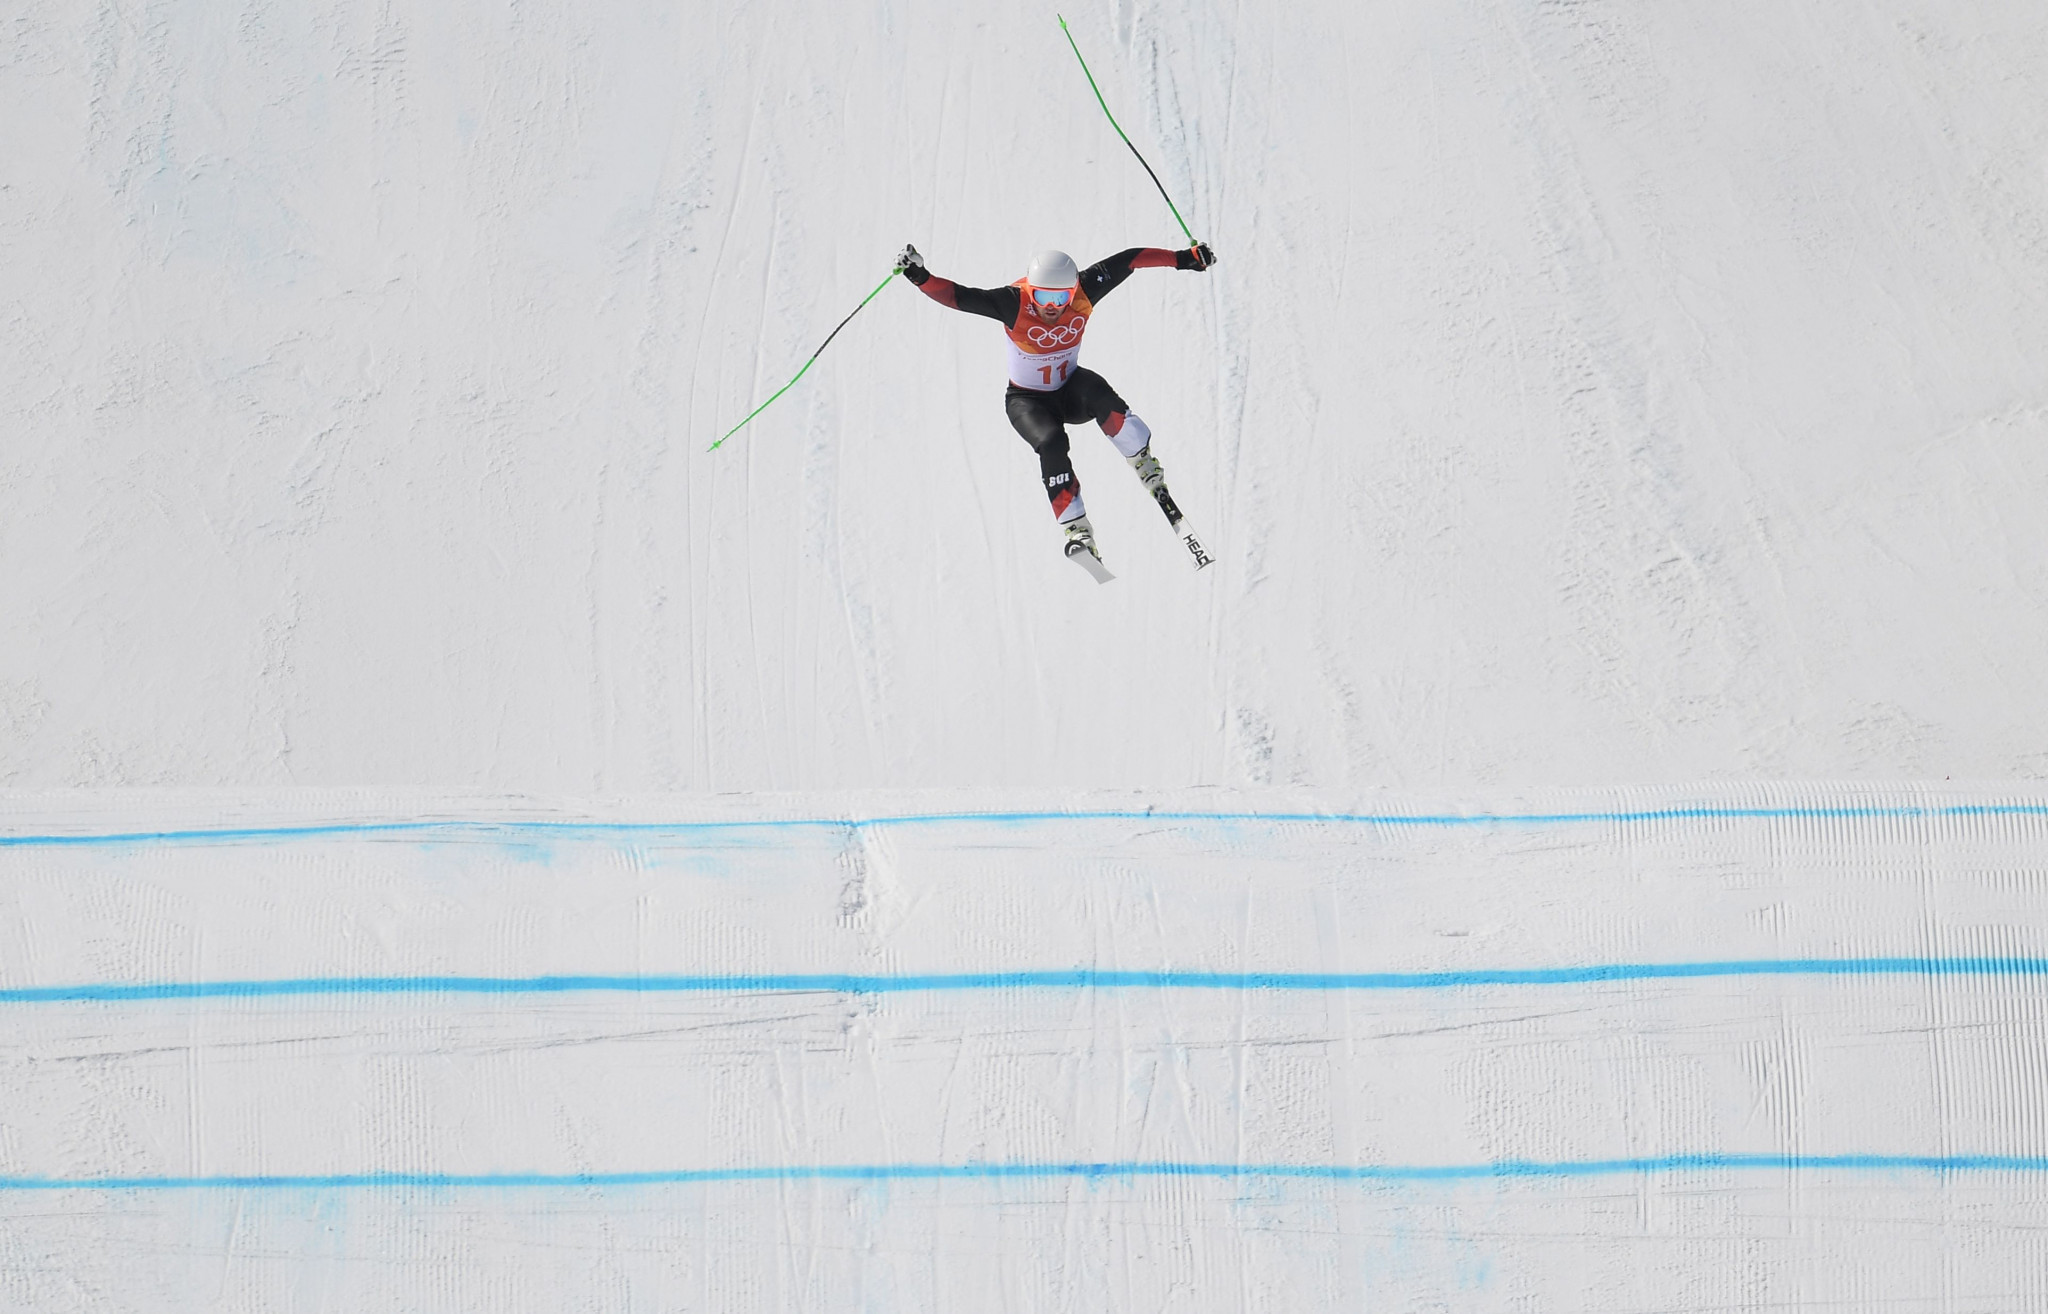 Bischofberger wins overall Ski Cross World Cup title after final event of season cancelled